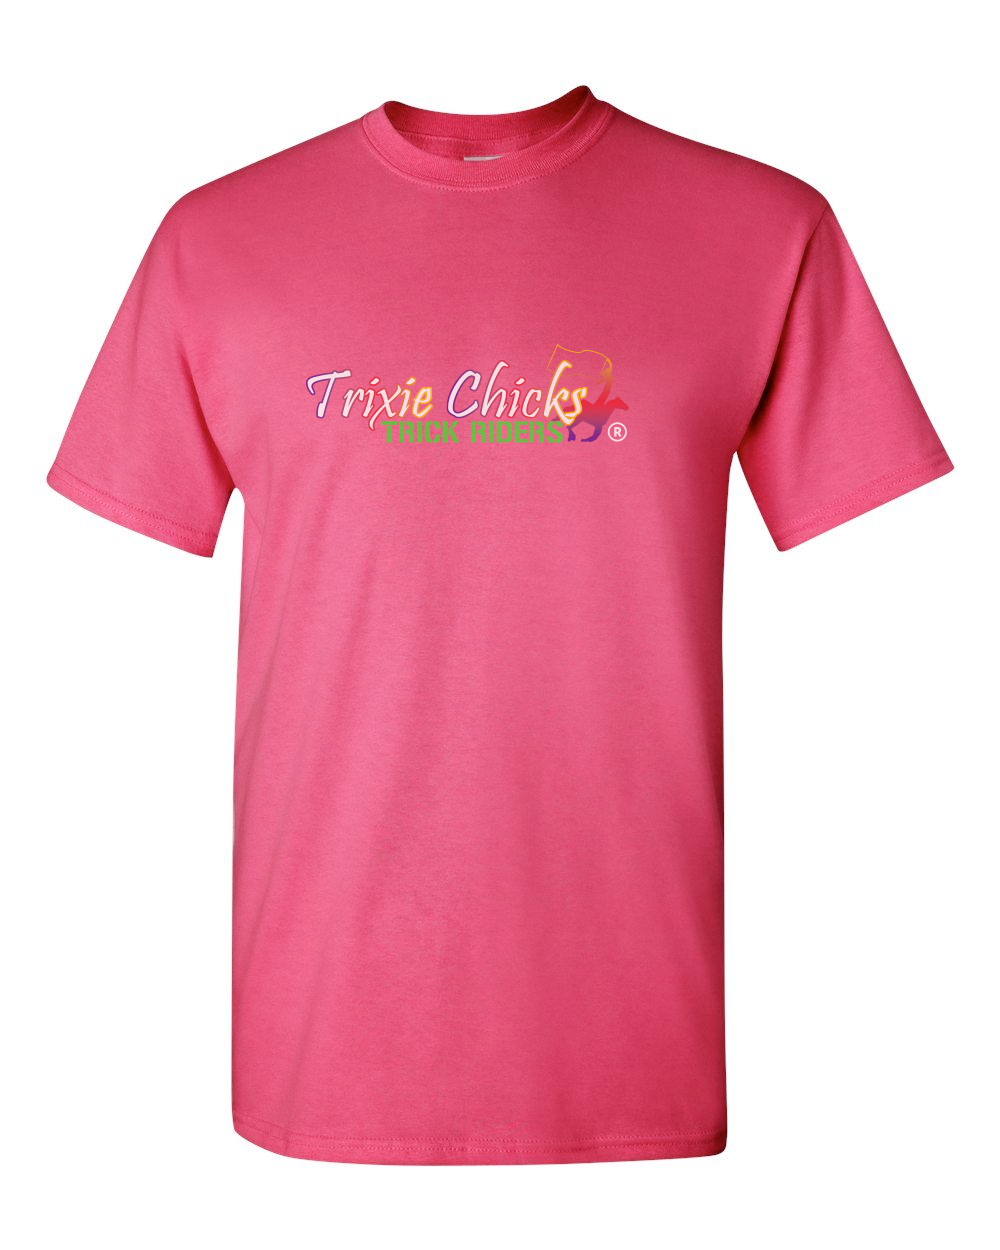 trixie-chicks-t-shirt_image